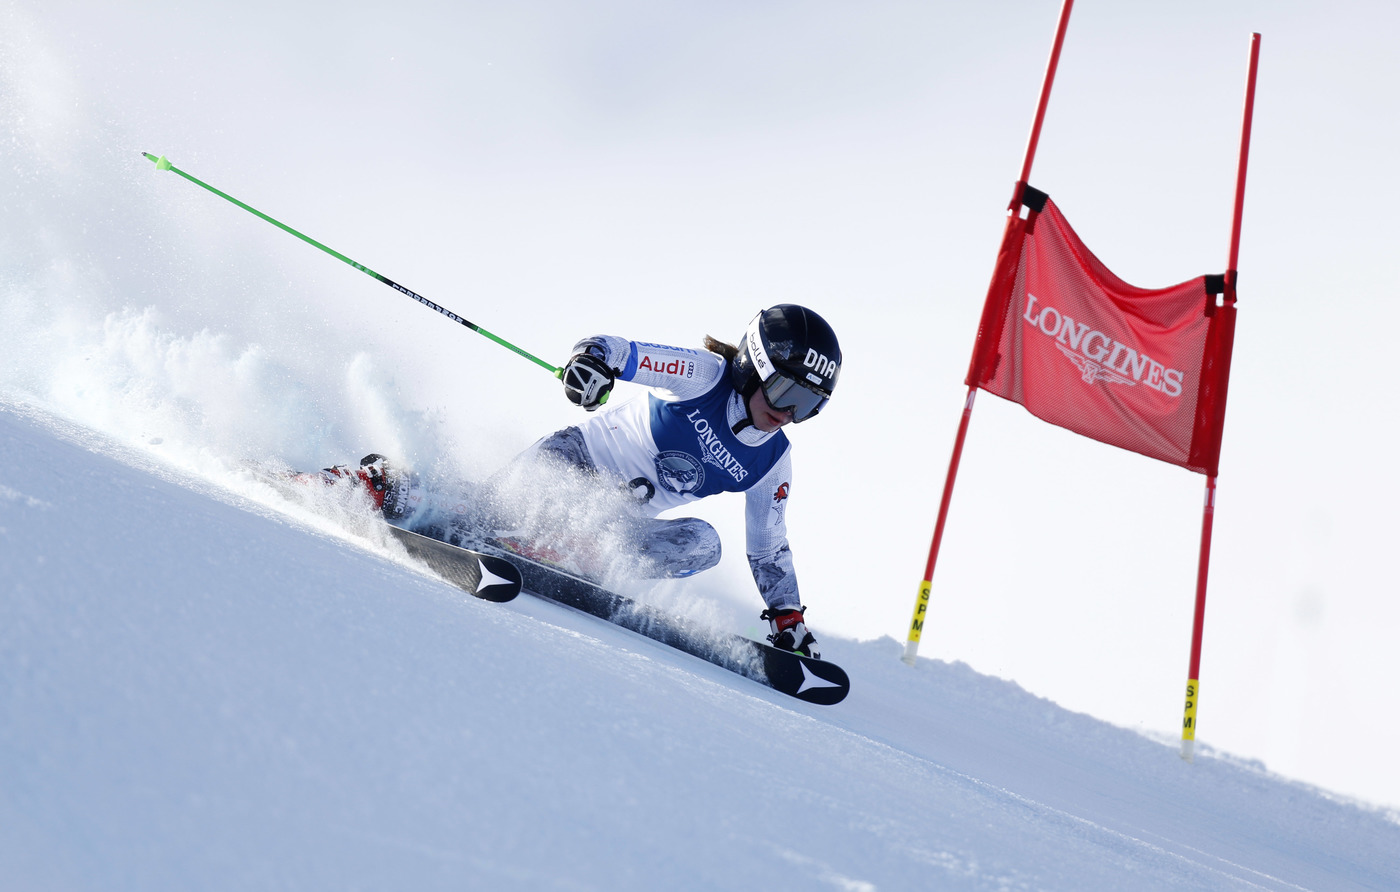 Longines Alpine Skiing Event: LONGINES FUTURE SKI CHAMPIONS - THE BEST YOUNG FEMALE SKIERS 16